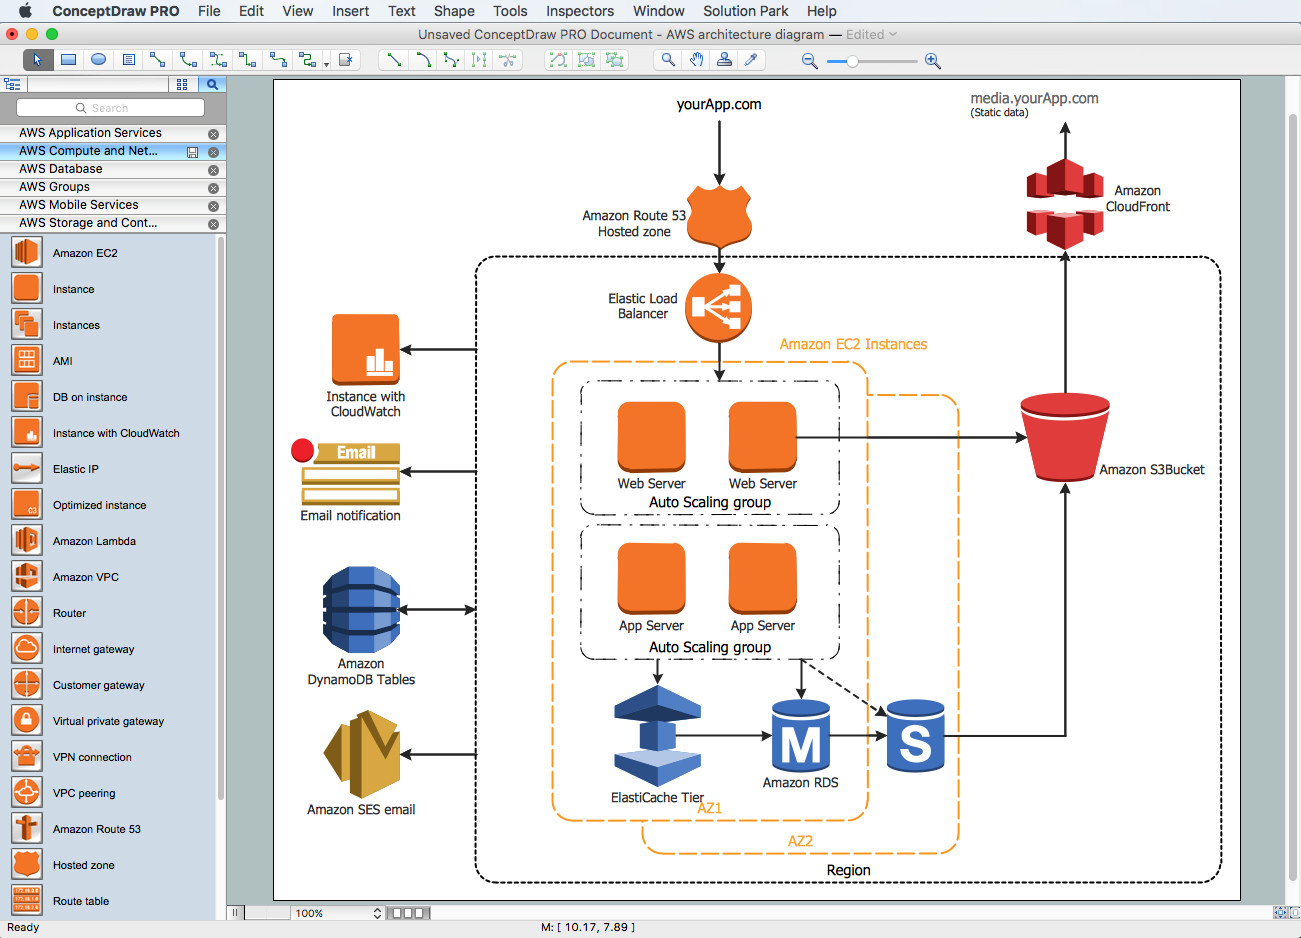 Amazon Web Services Diagrams <br>diagramming tool for architecture *